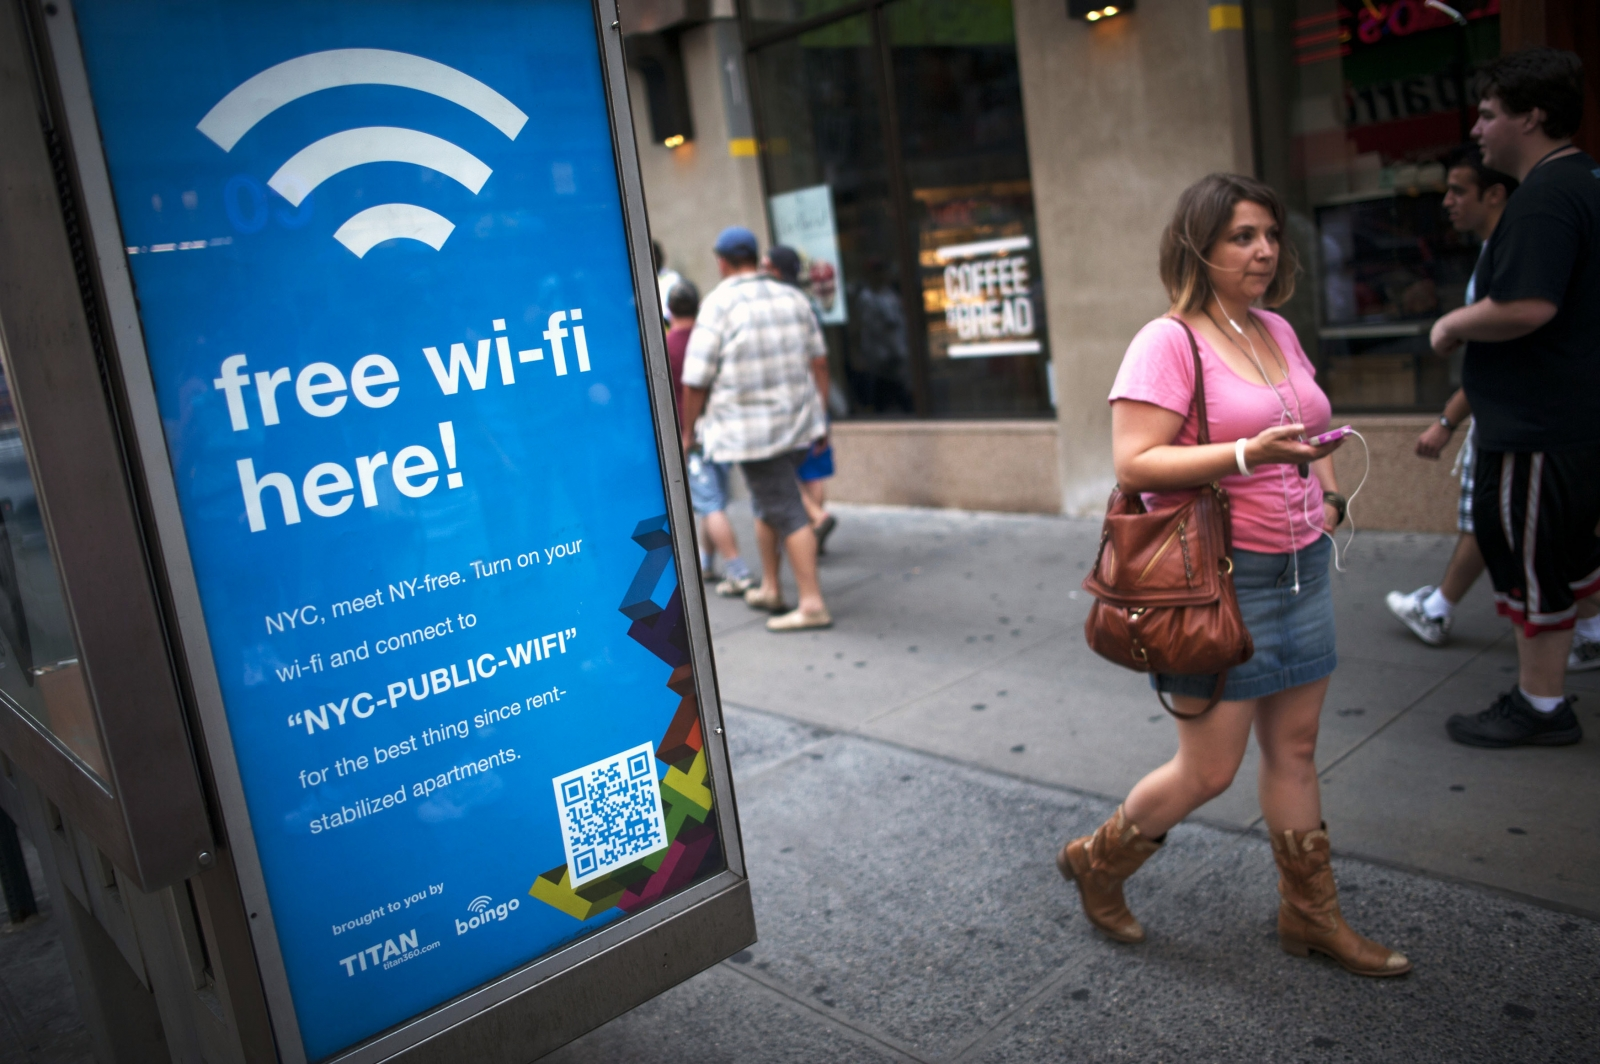 Free Wi-Fi hotspots Security Risk